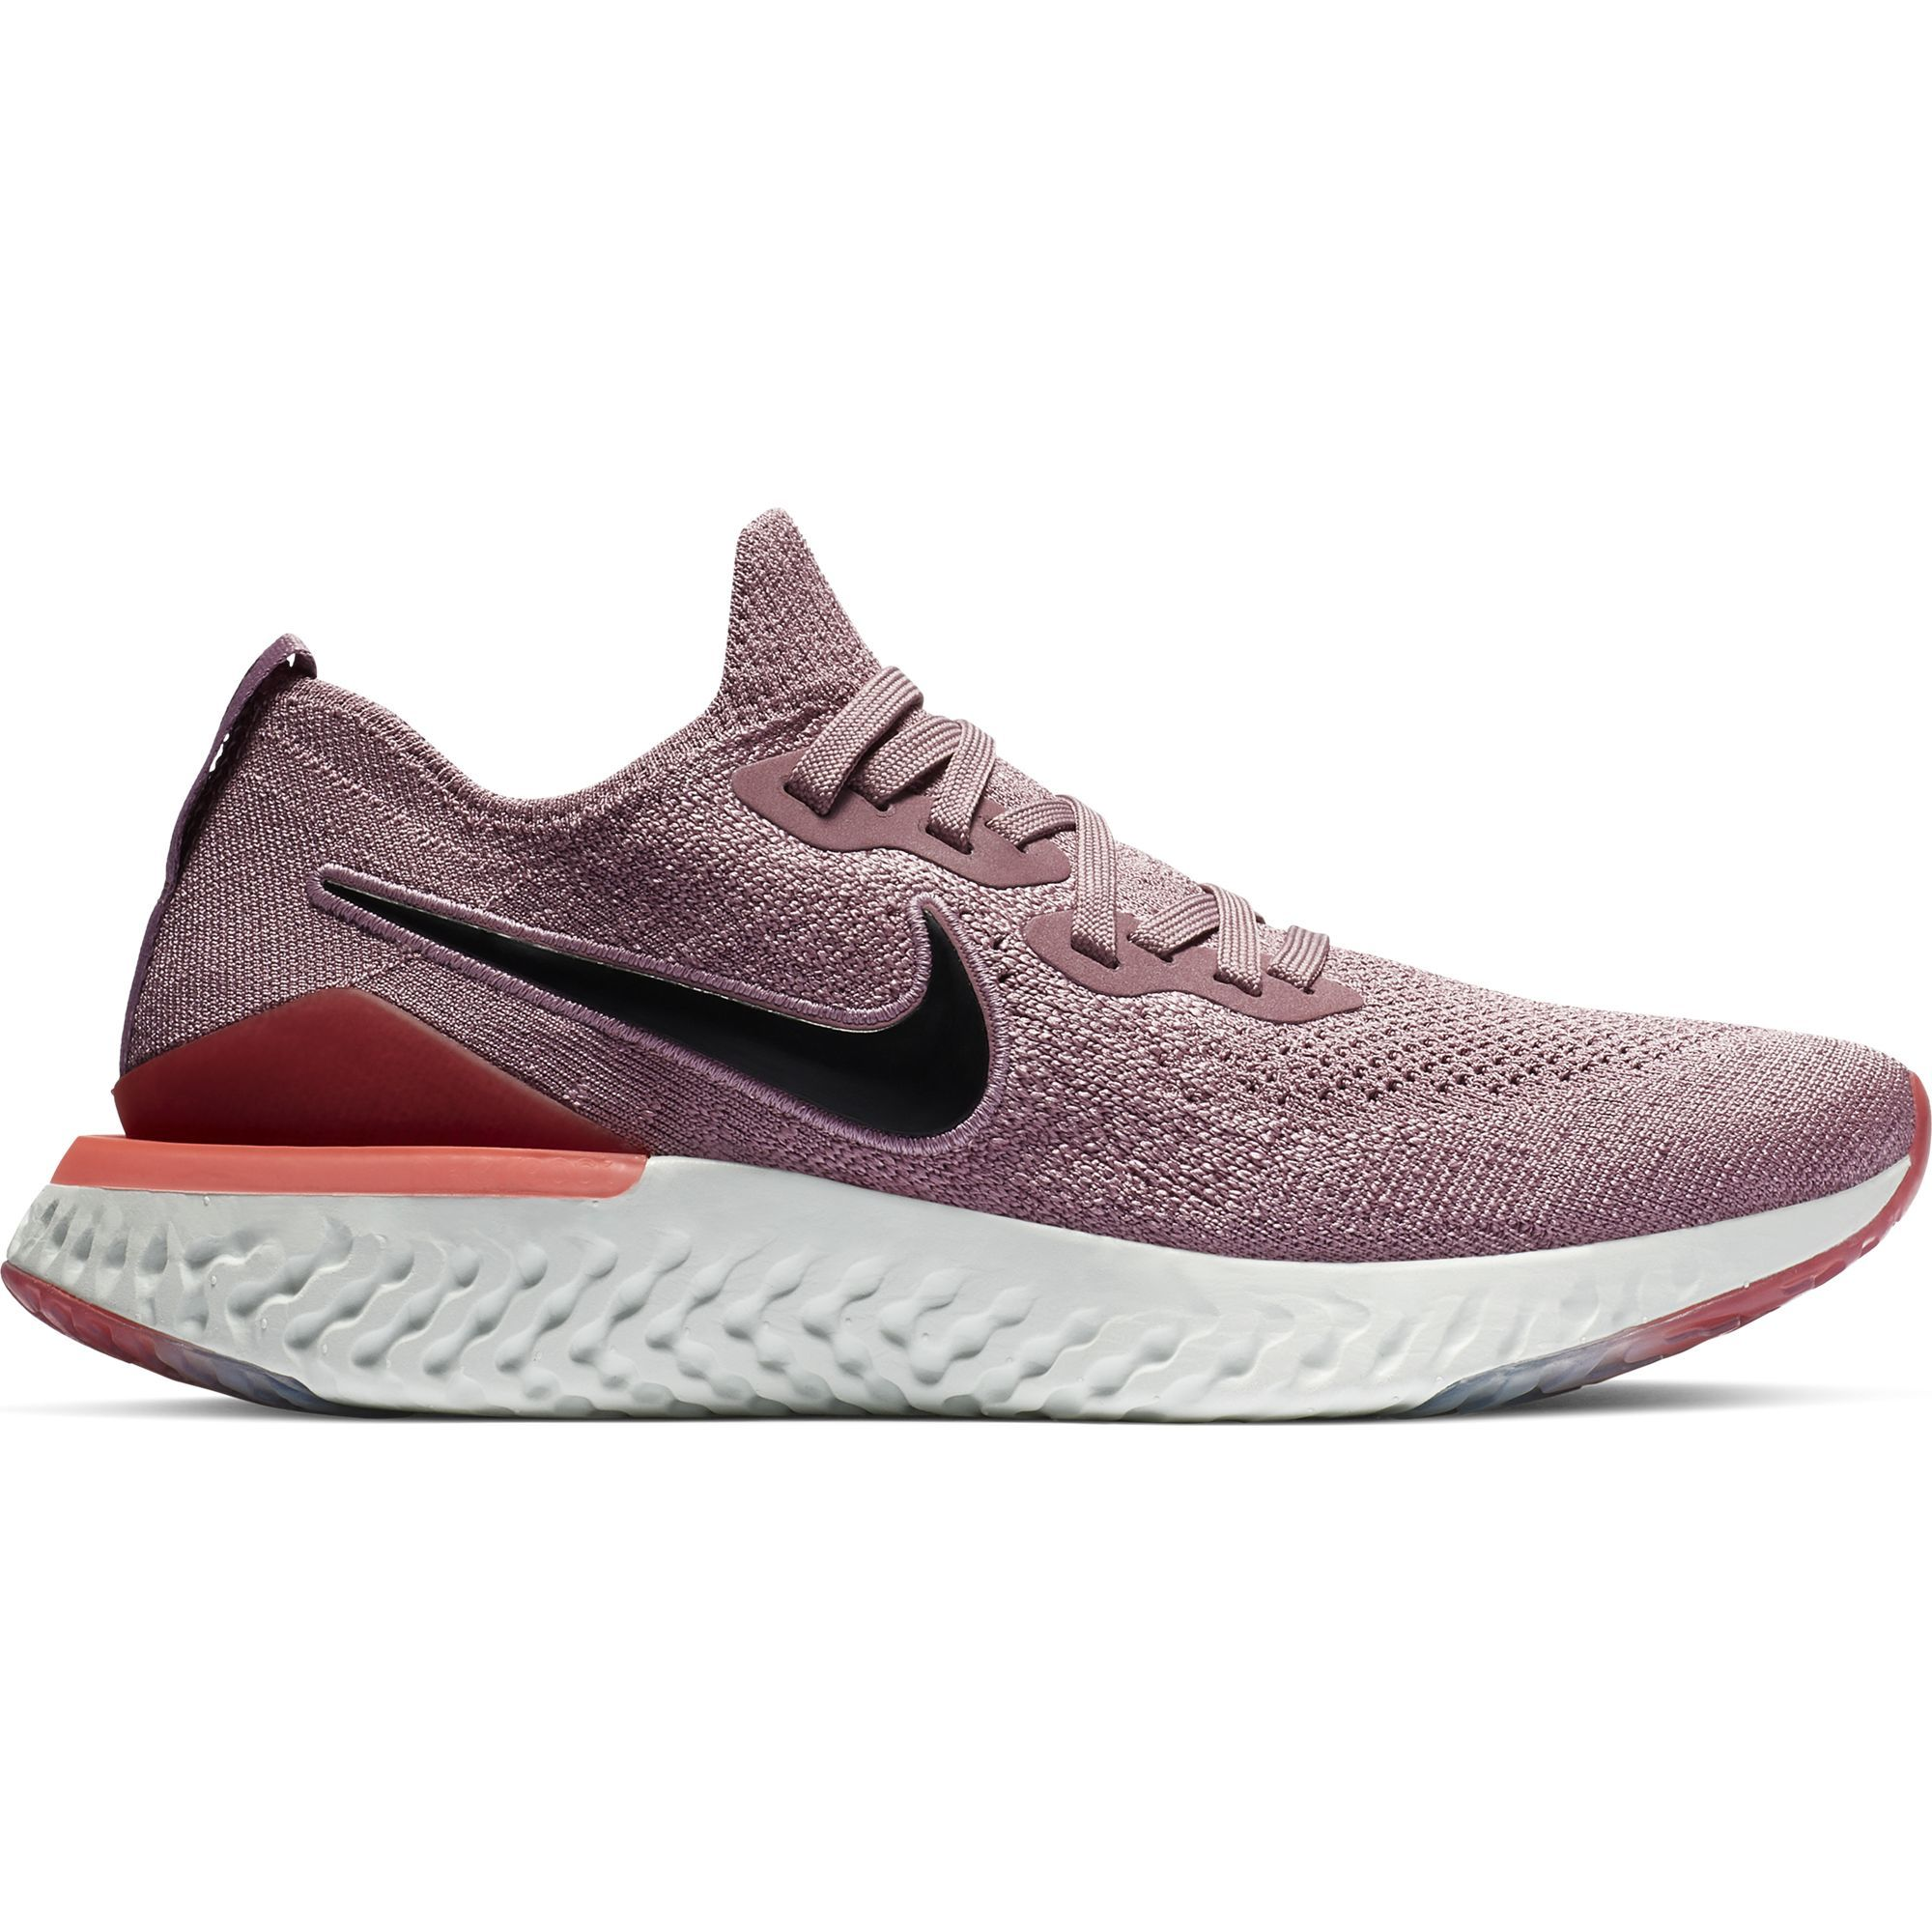 Nike Lady Epic React Flyknit 2 in Rosa